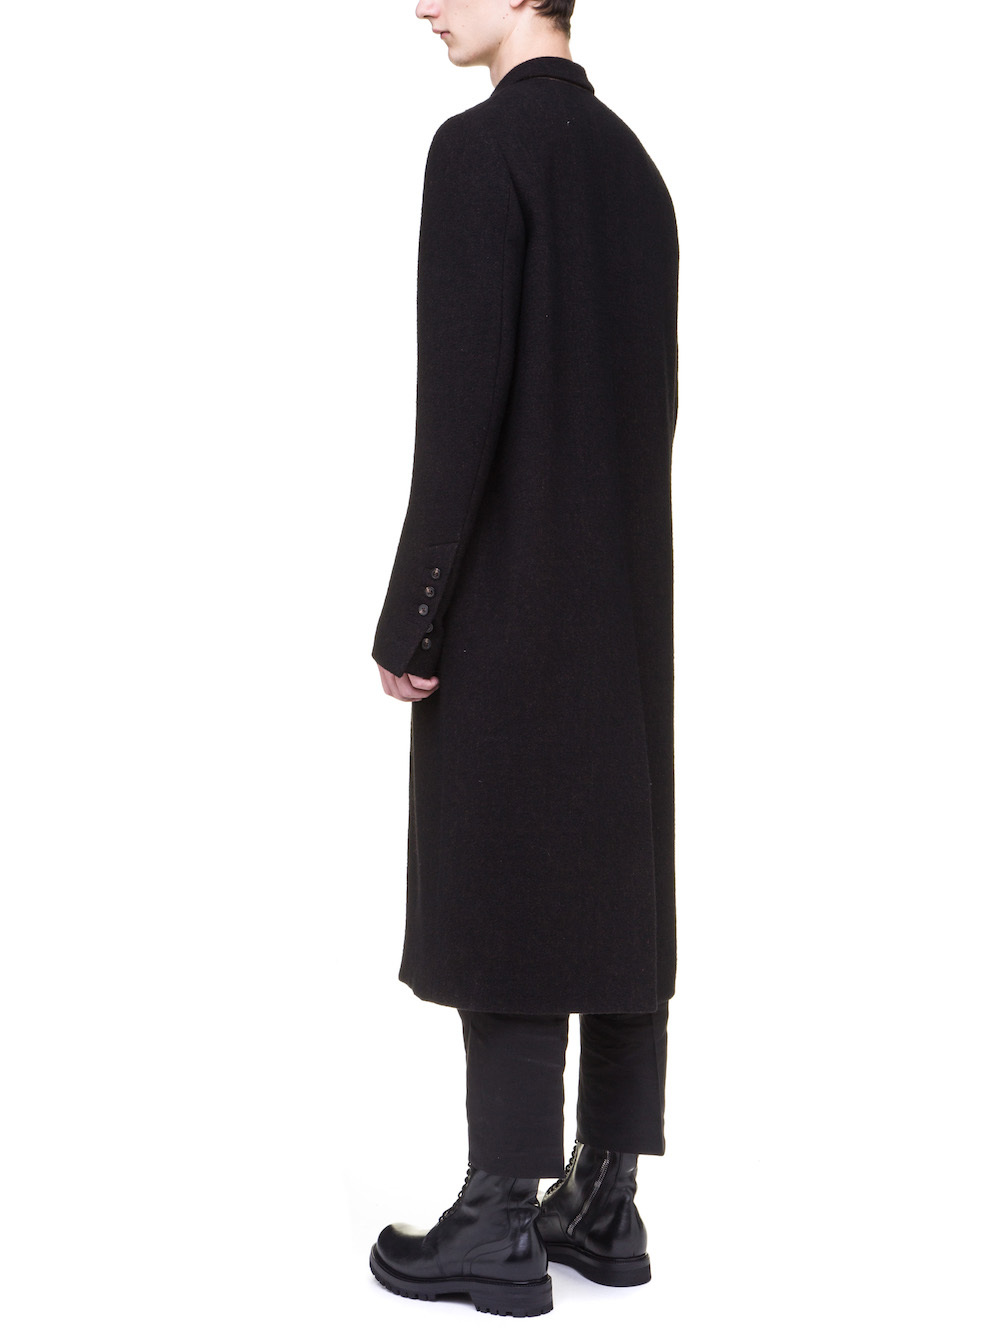 RICK OWENS MOREAU COAT IN BROWN BLACK